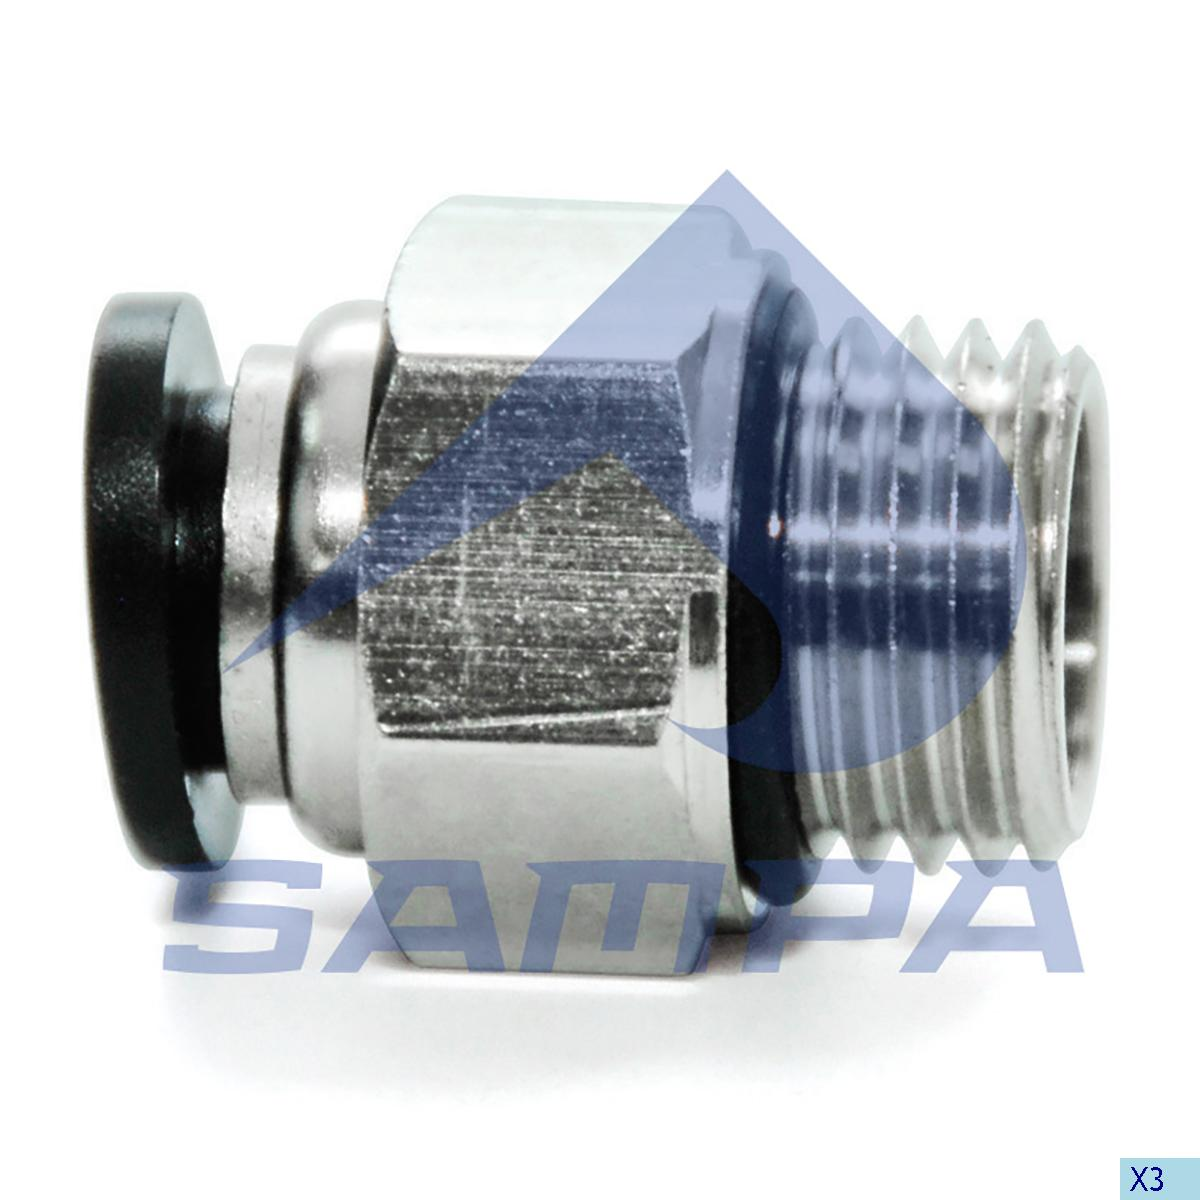 Male Push in Connector, Universal, Universal Parts